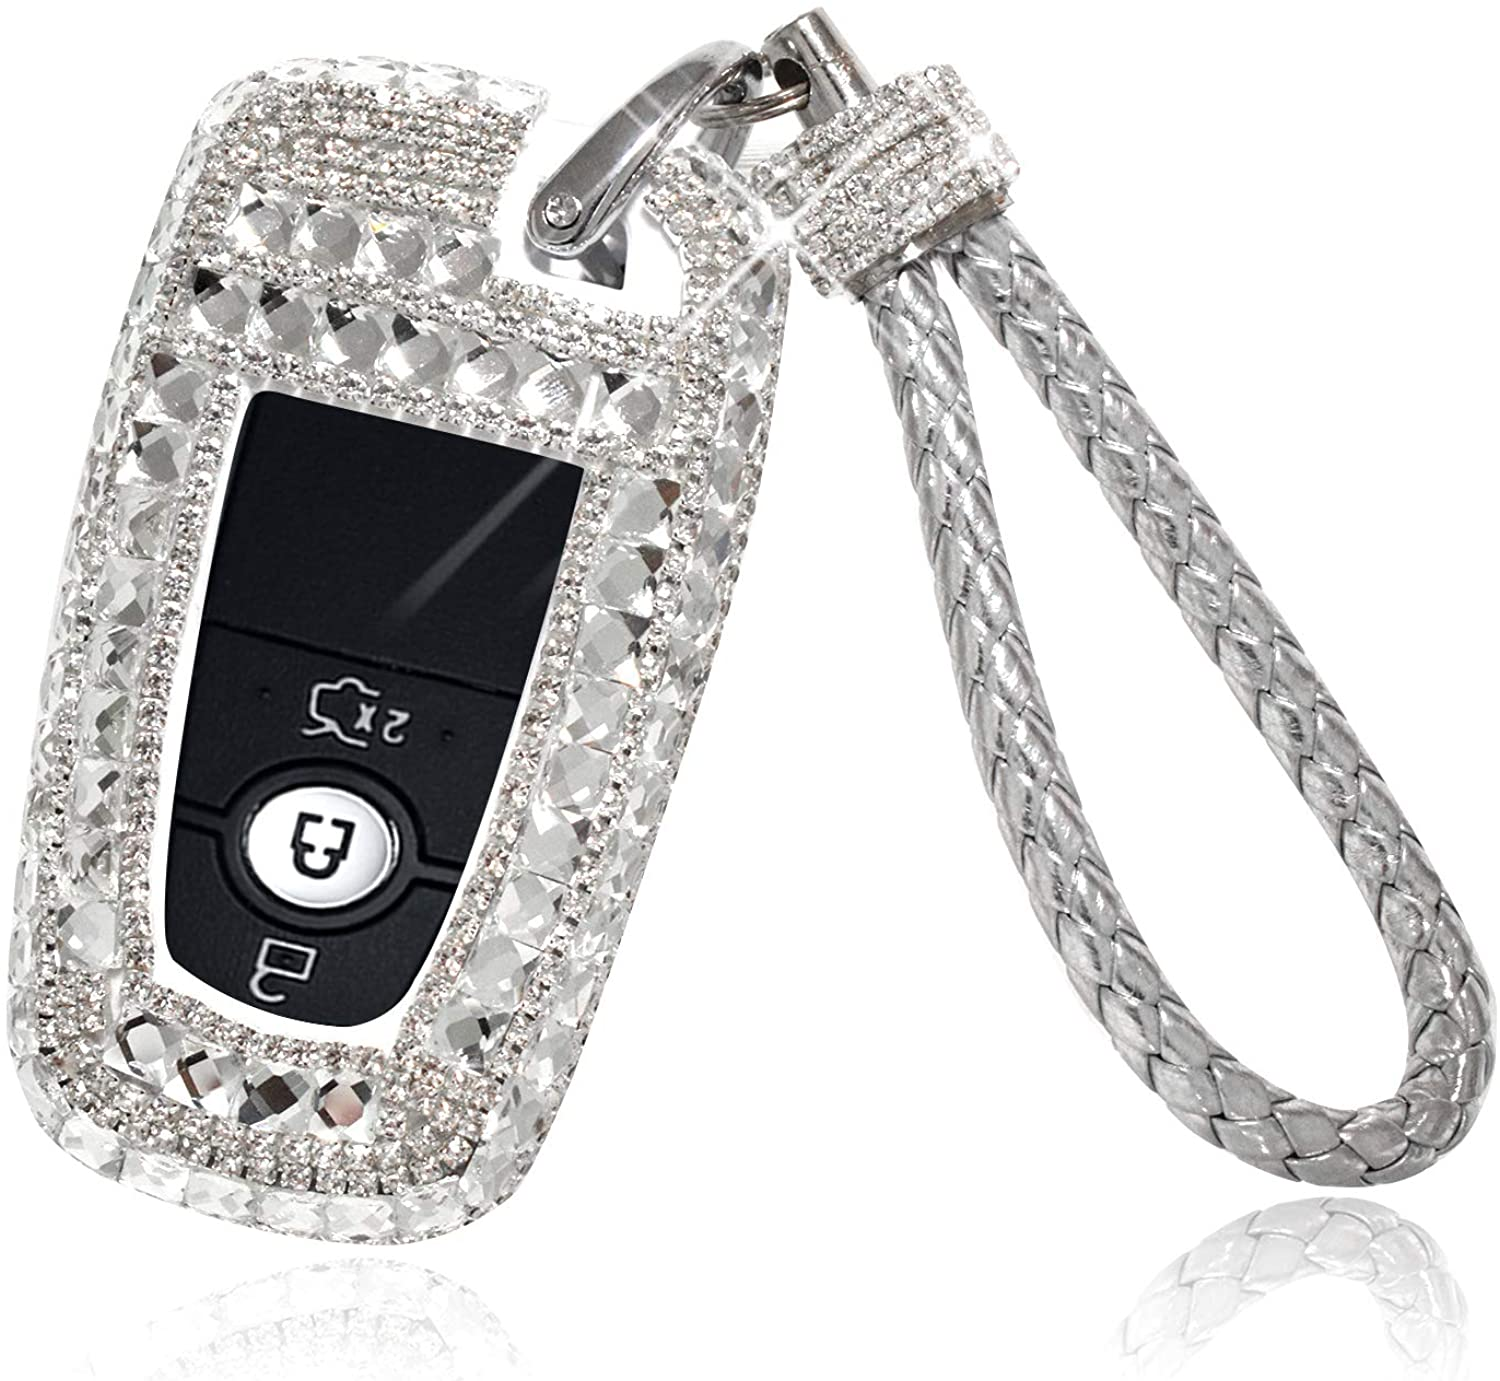 GeeGee Car Key Case Key Shell Fob Key Cover Key Chain Lady Key Ring with Bling Diamond Crystals For Ford Mondeo Edge Mustang Keyless Entry Remote Control Smart Key